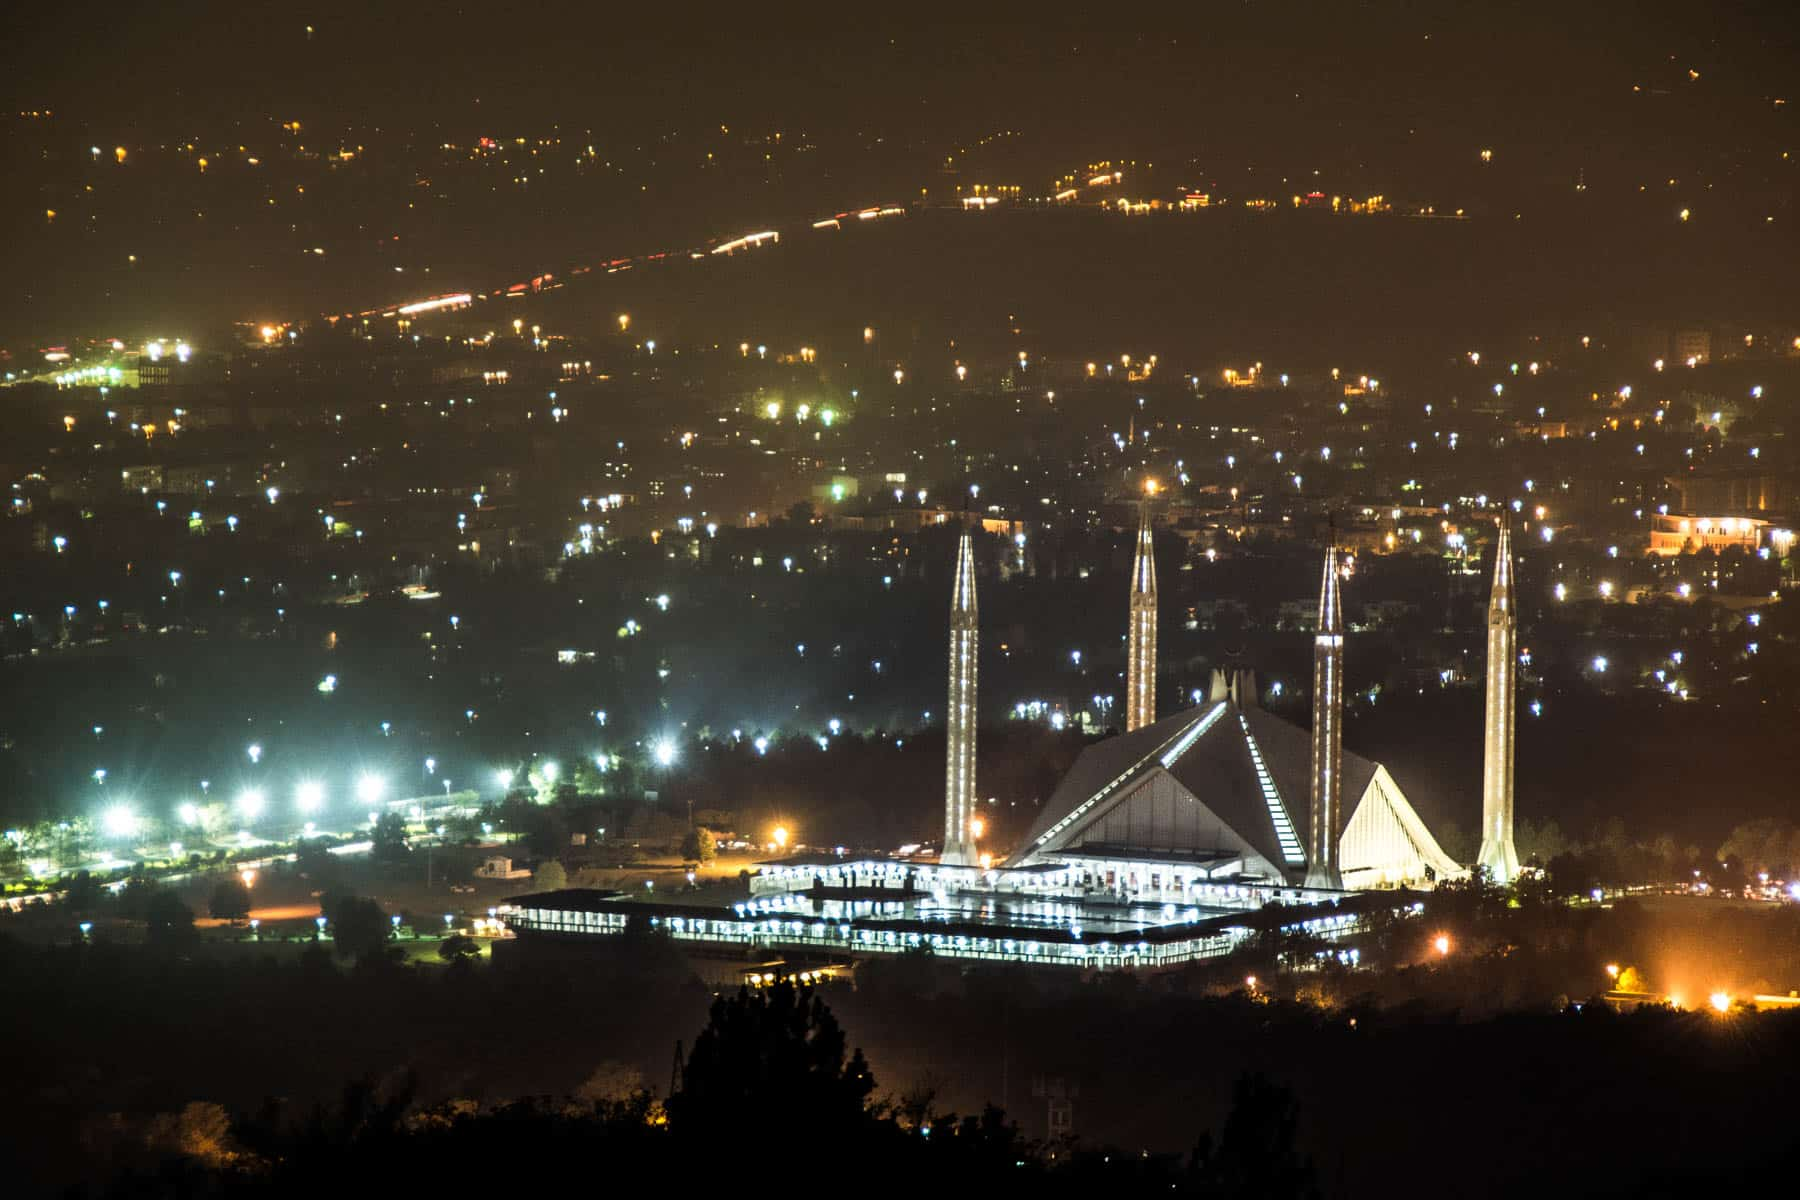 Islamabad at night - Lost With Purpose travel blog